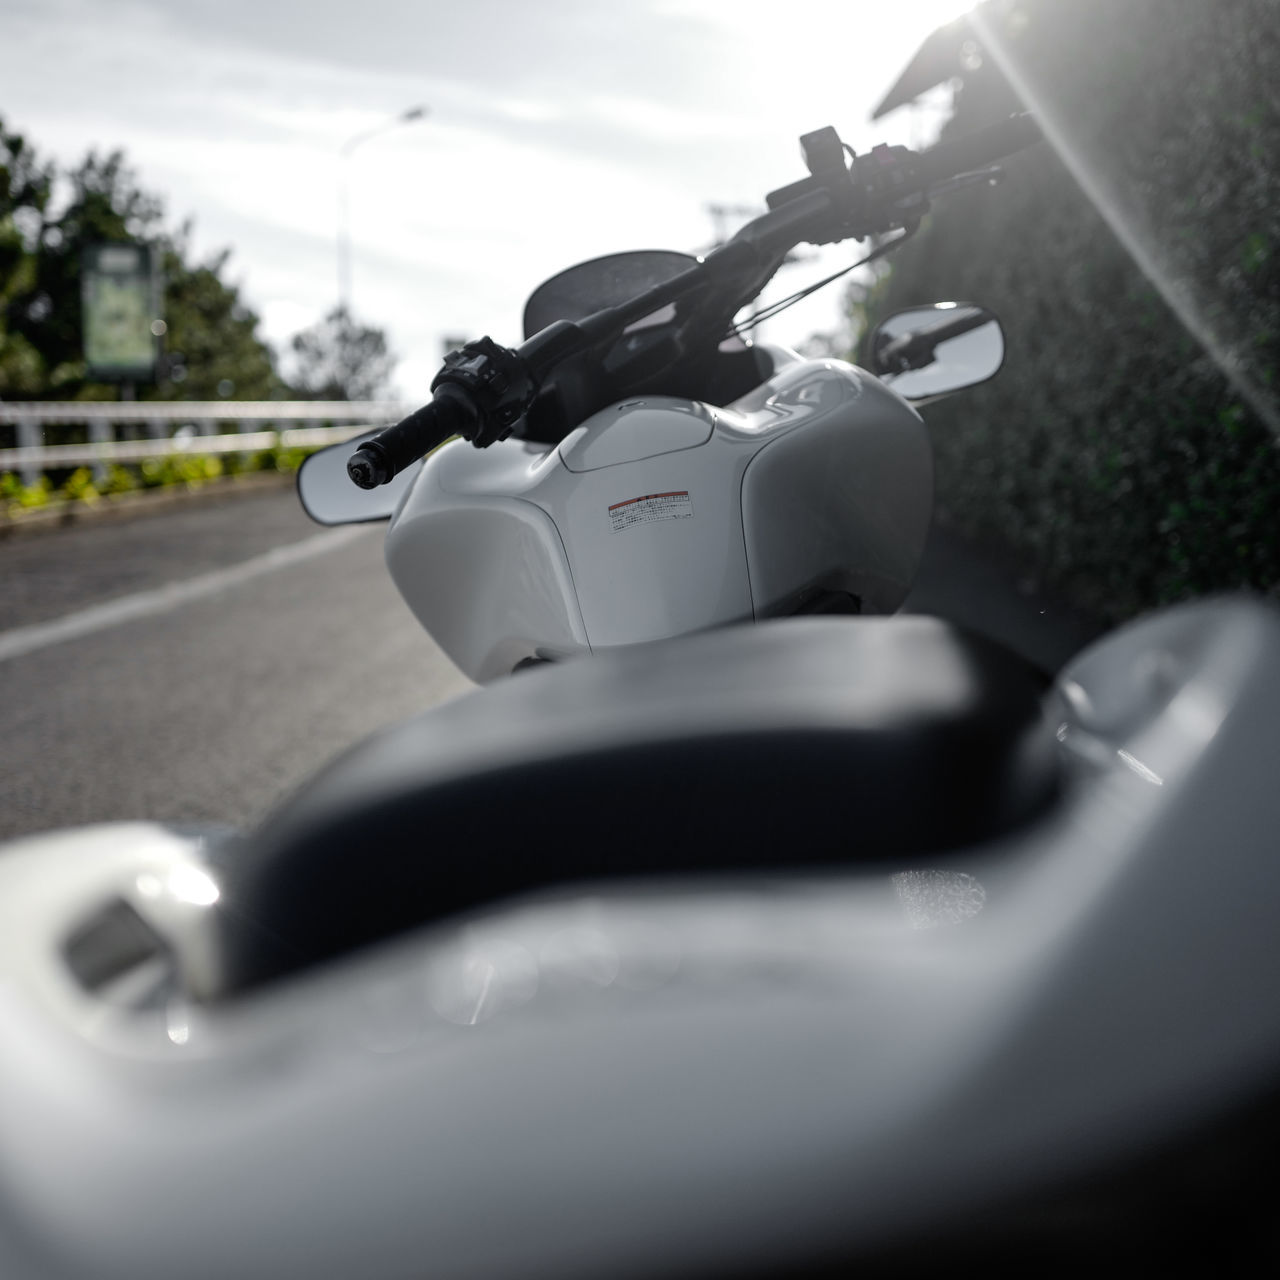 transportation, land vehicle, mode of transport, motorcycle, road, selective focus, day, side-view mirror, steering wheel, car, no people, close-up, helmet, scooter, outdoors, speedometer, sky